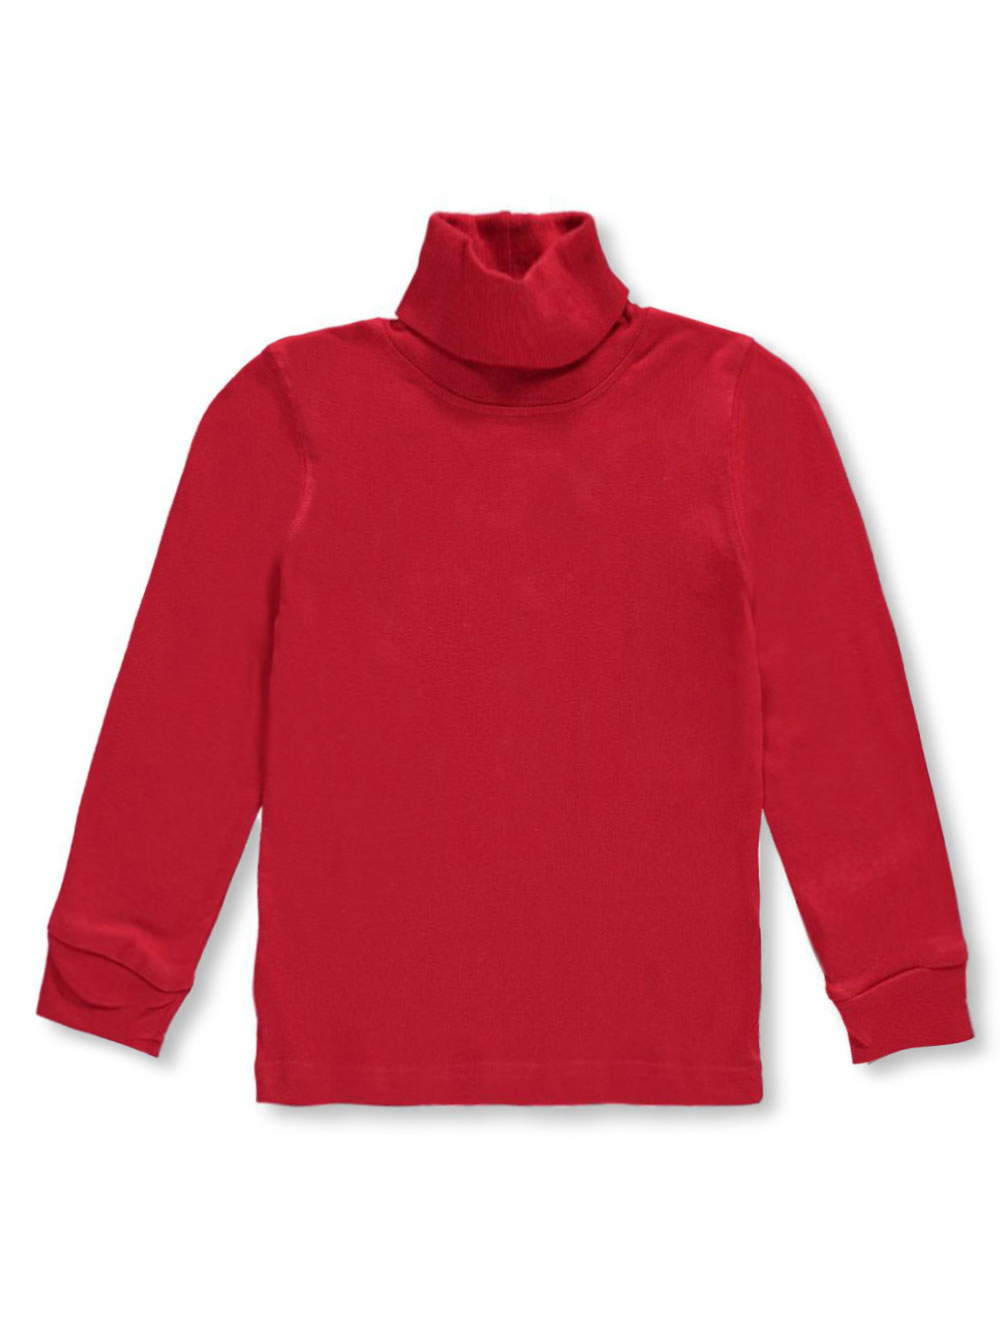 Image of French Toast Little Boys Toddler Basic Turtleneck Sizes 2T  4T  red 2t